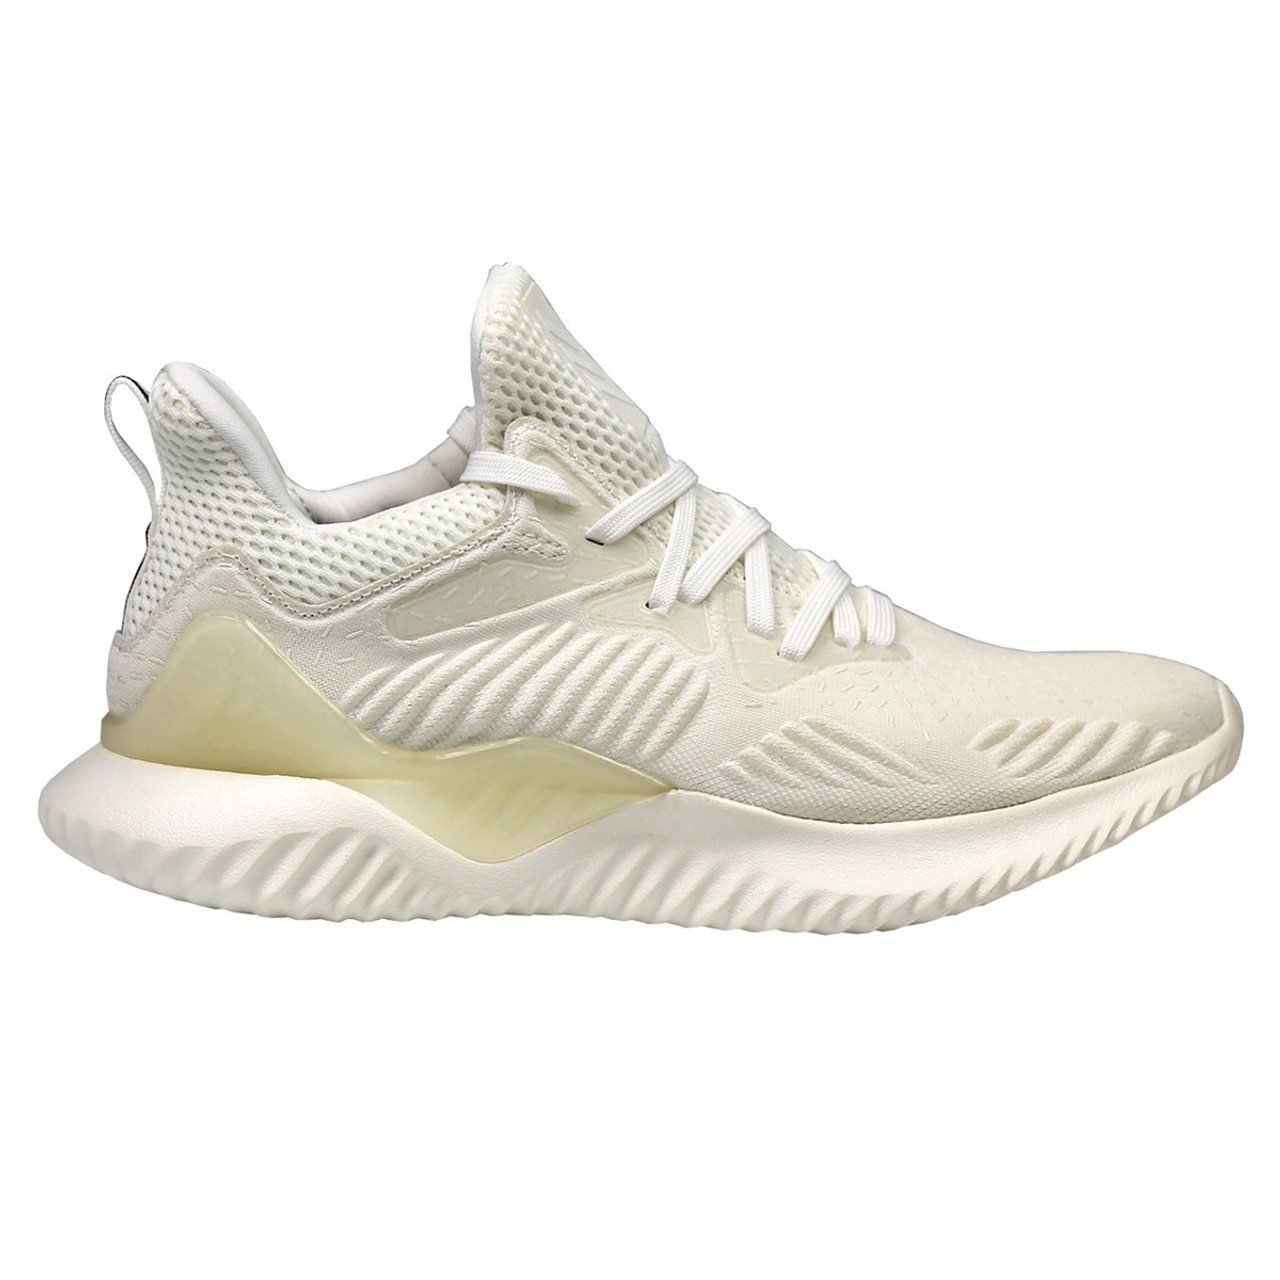 huge selection of 98114 923de Adidas Alphabounce Beyond Women's Sneakers DB1119